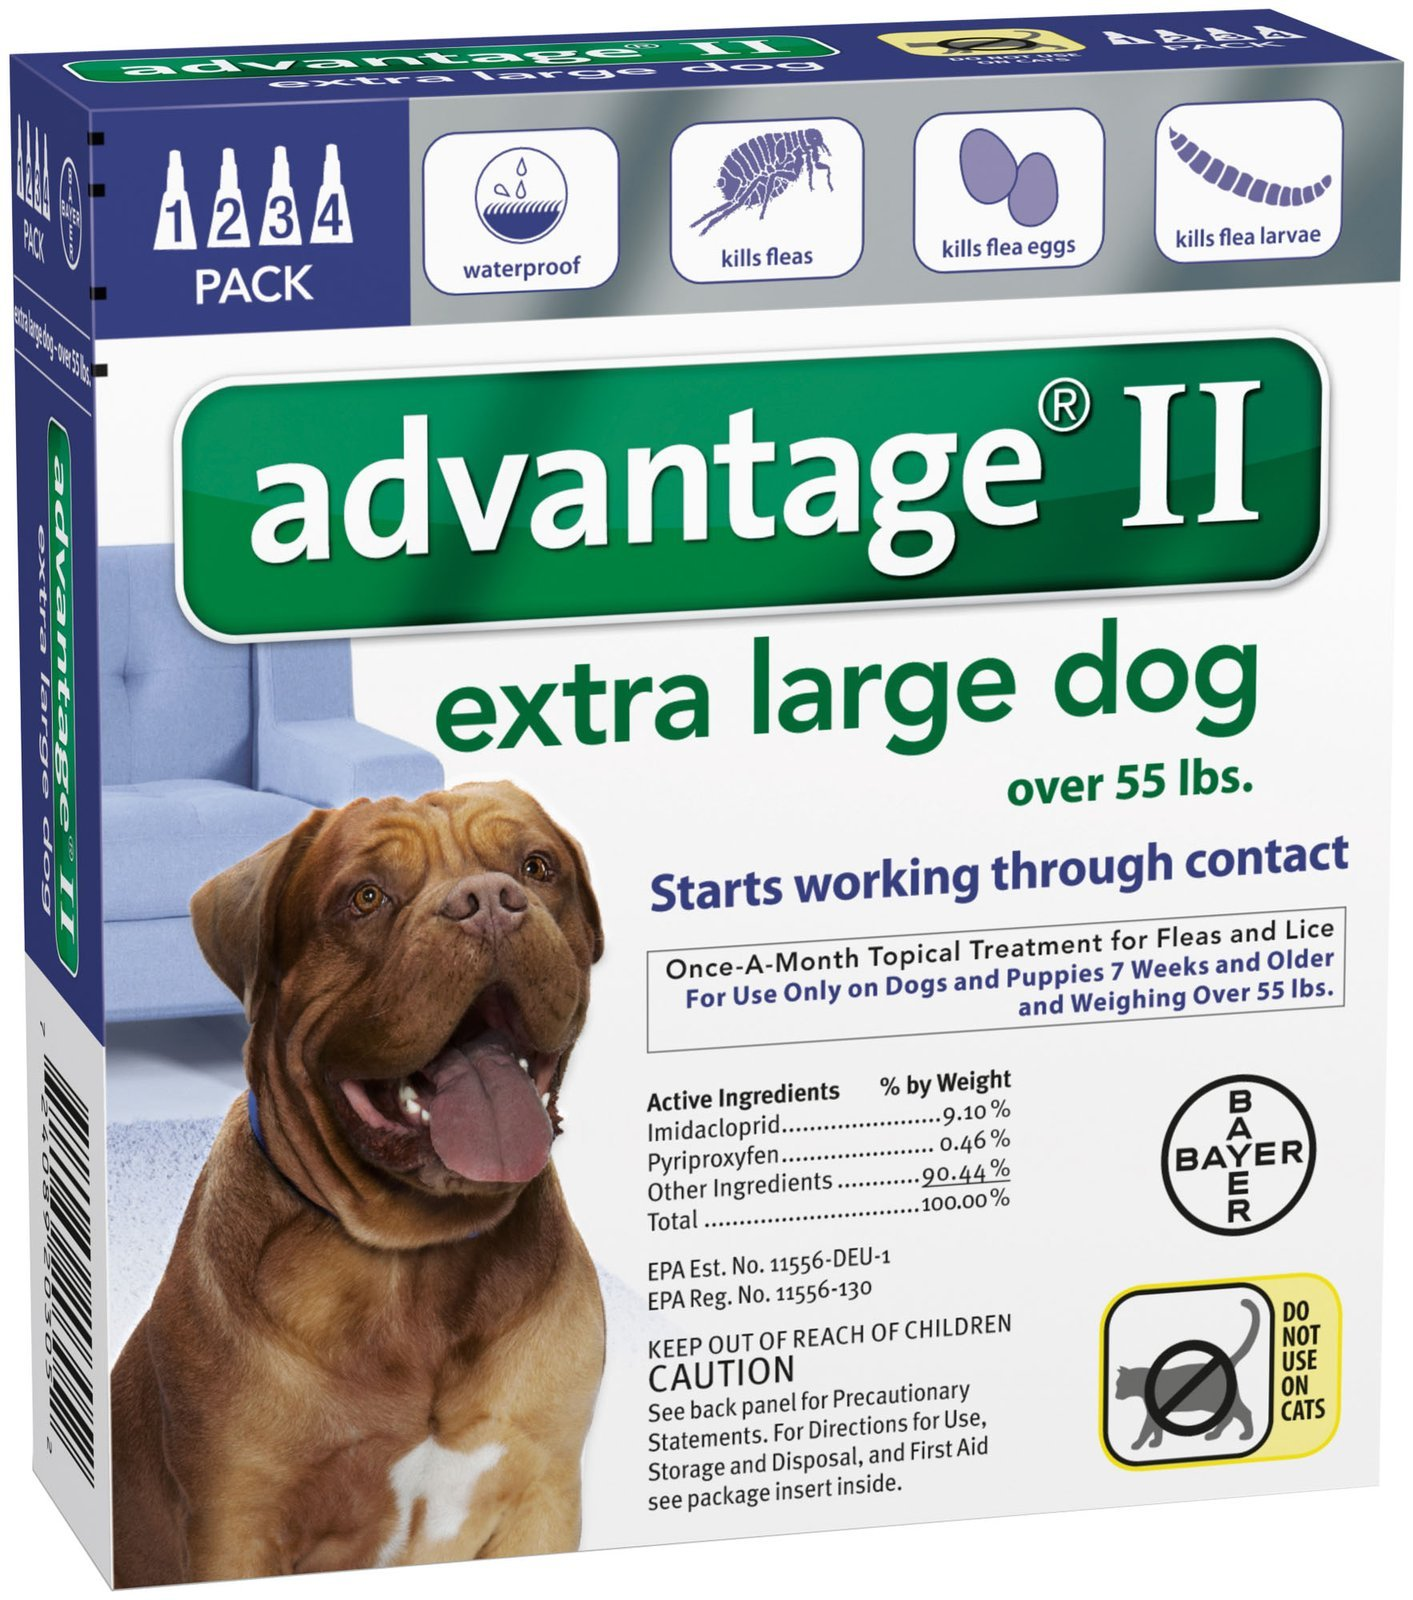 Bayer Animal Health Advantage II Extra Large Dog 4-Pack by Bayer Animal Health